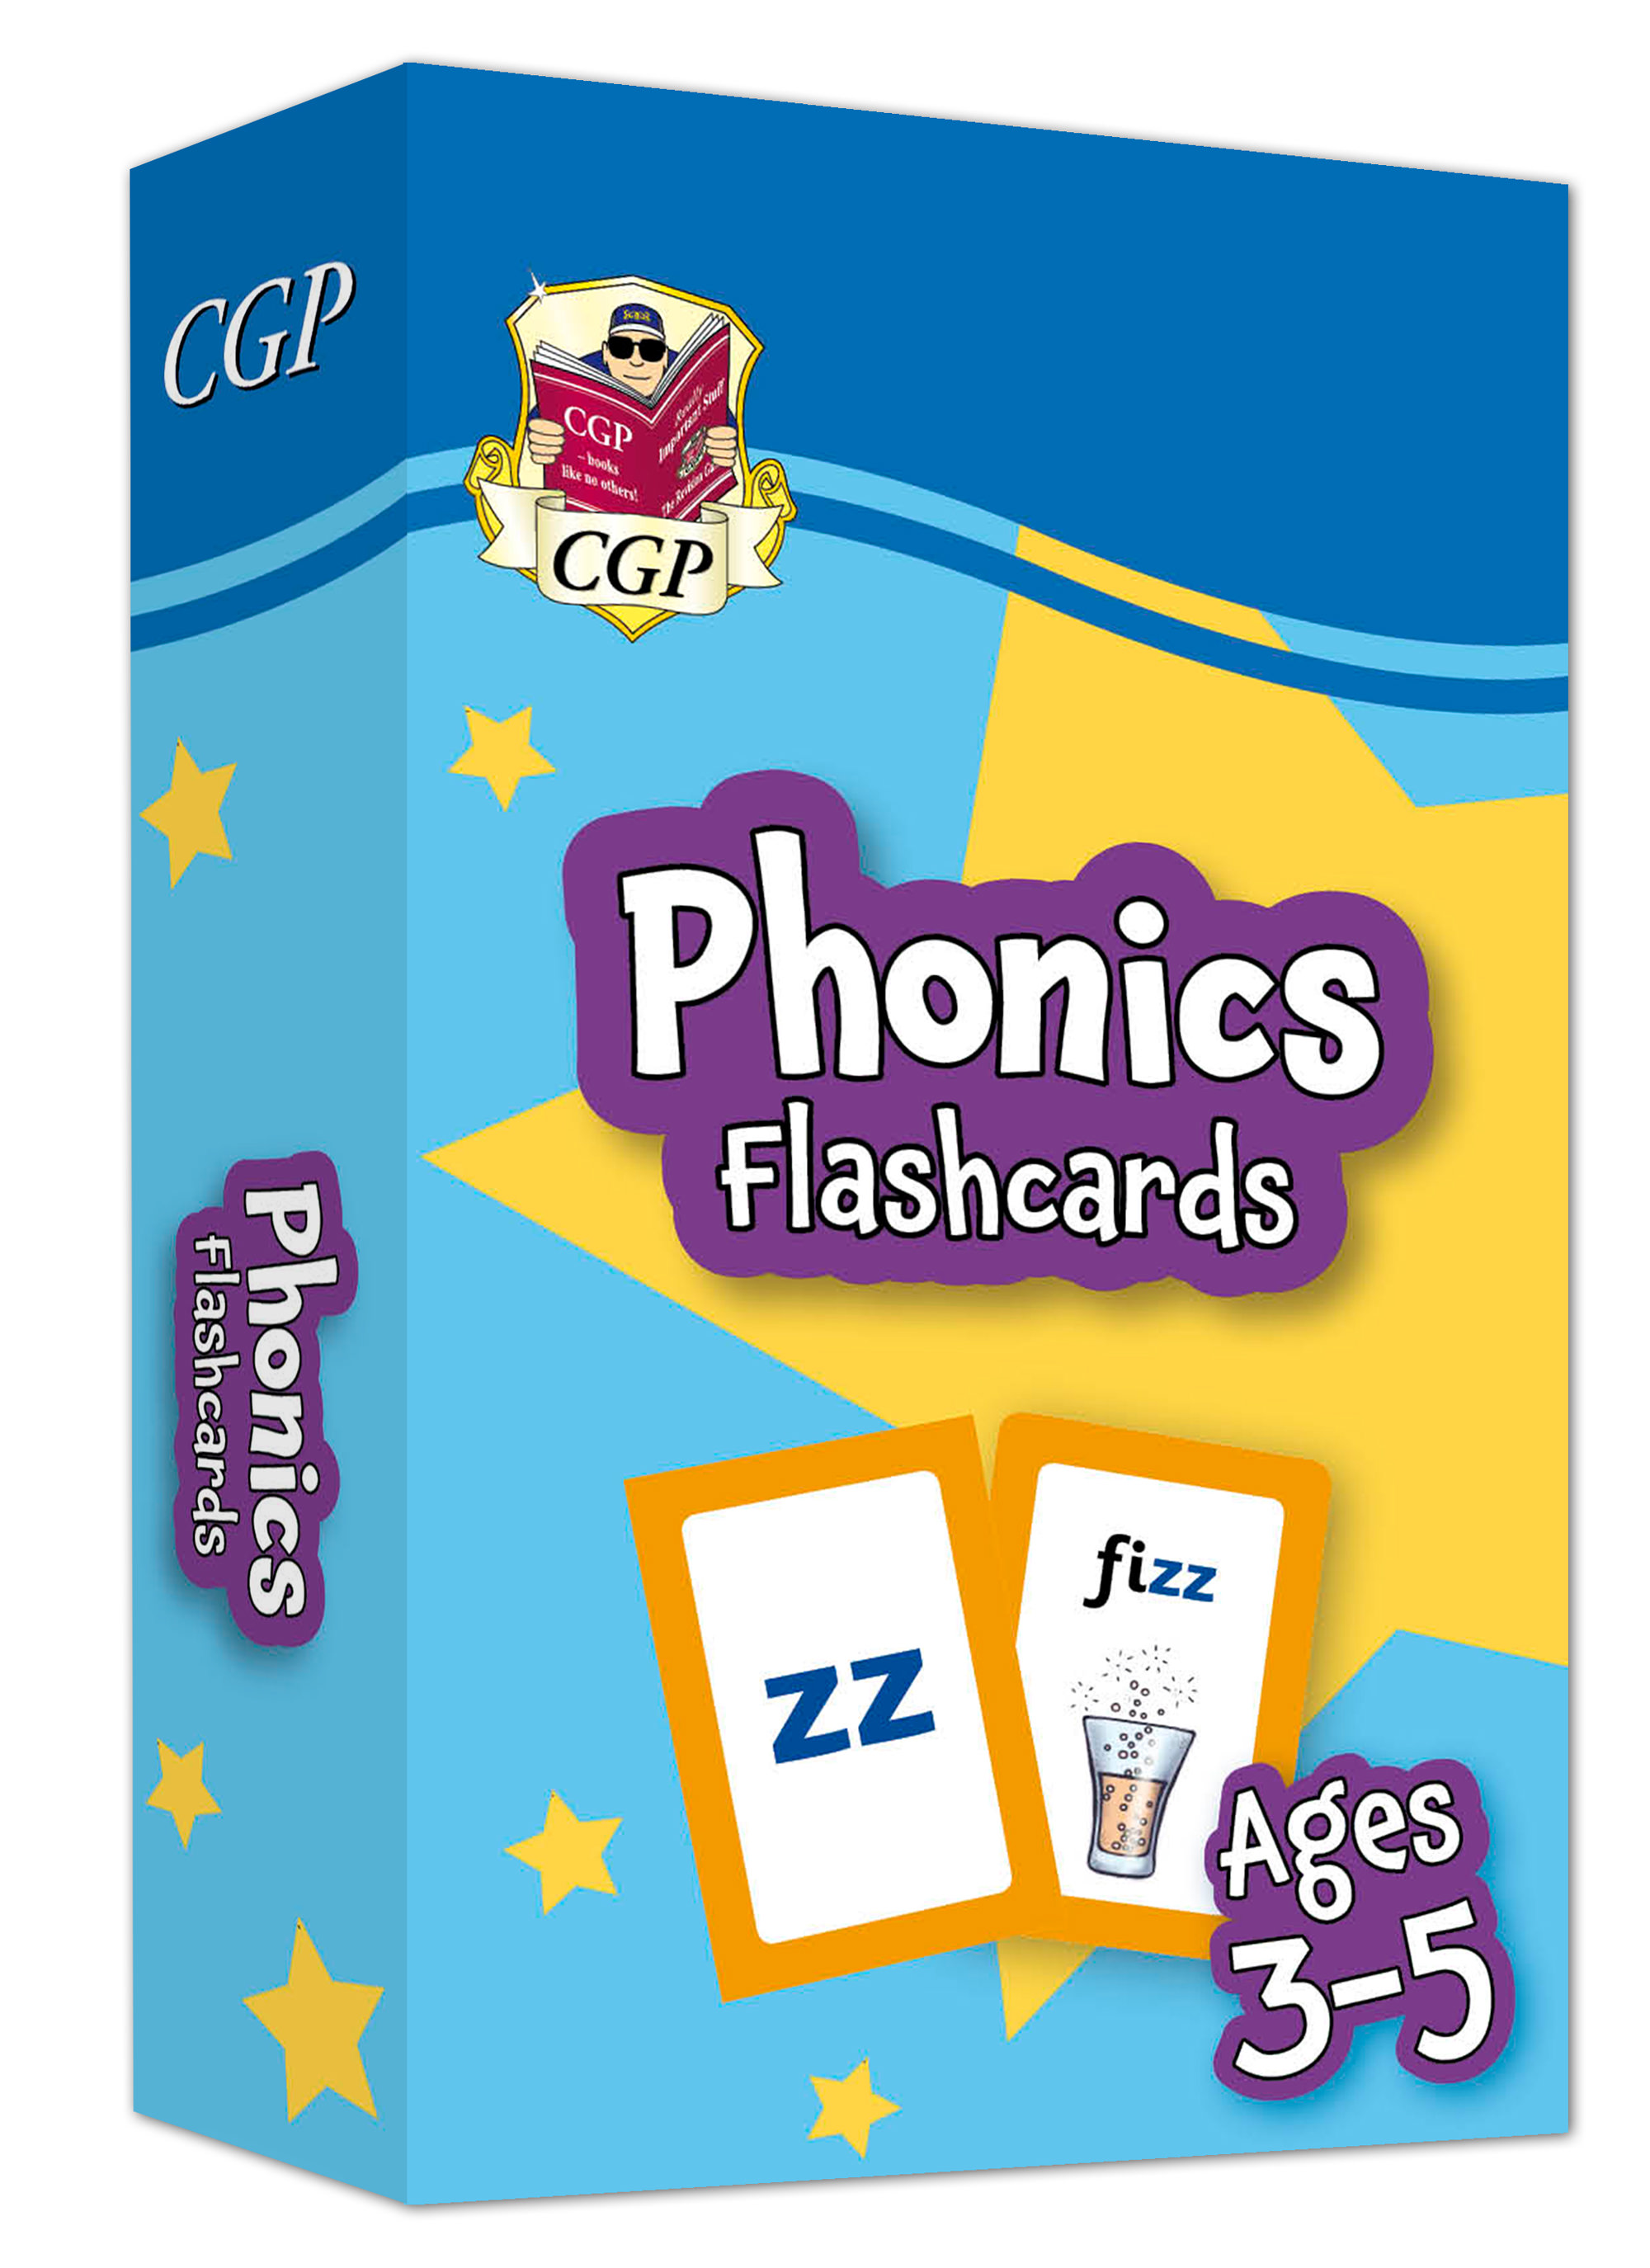 EPFOF01DK - New Phonics Home Learning Flashcards for Ages 3-5